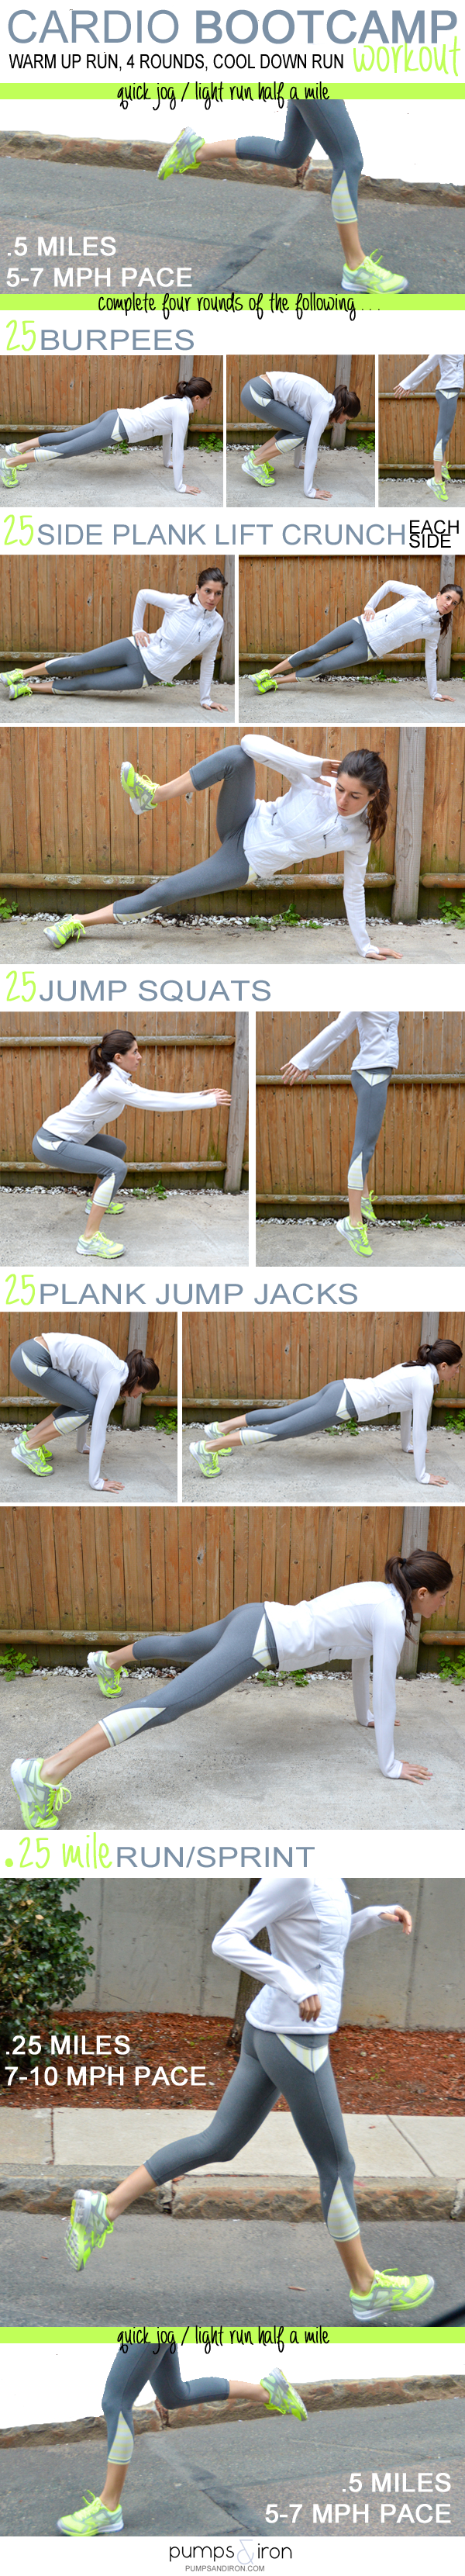 Cardio Boot Camp Workout - running intervals with a bodyweight strength training…